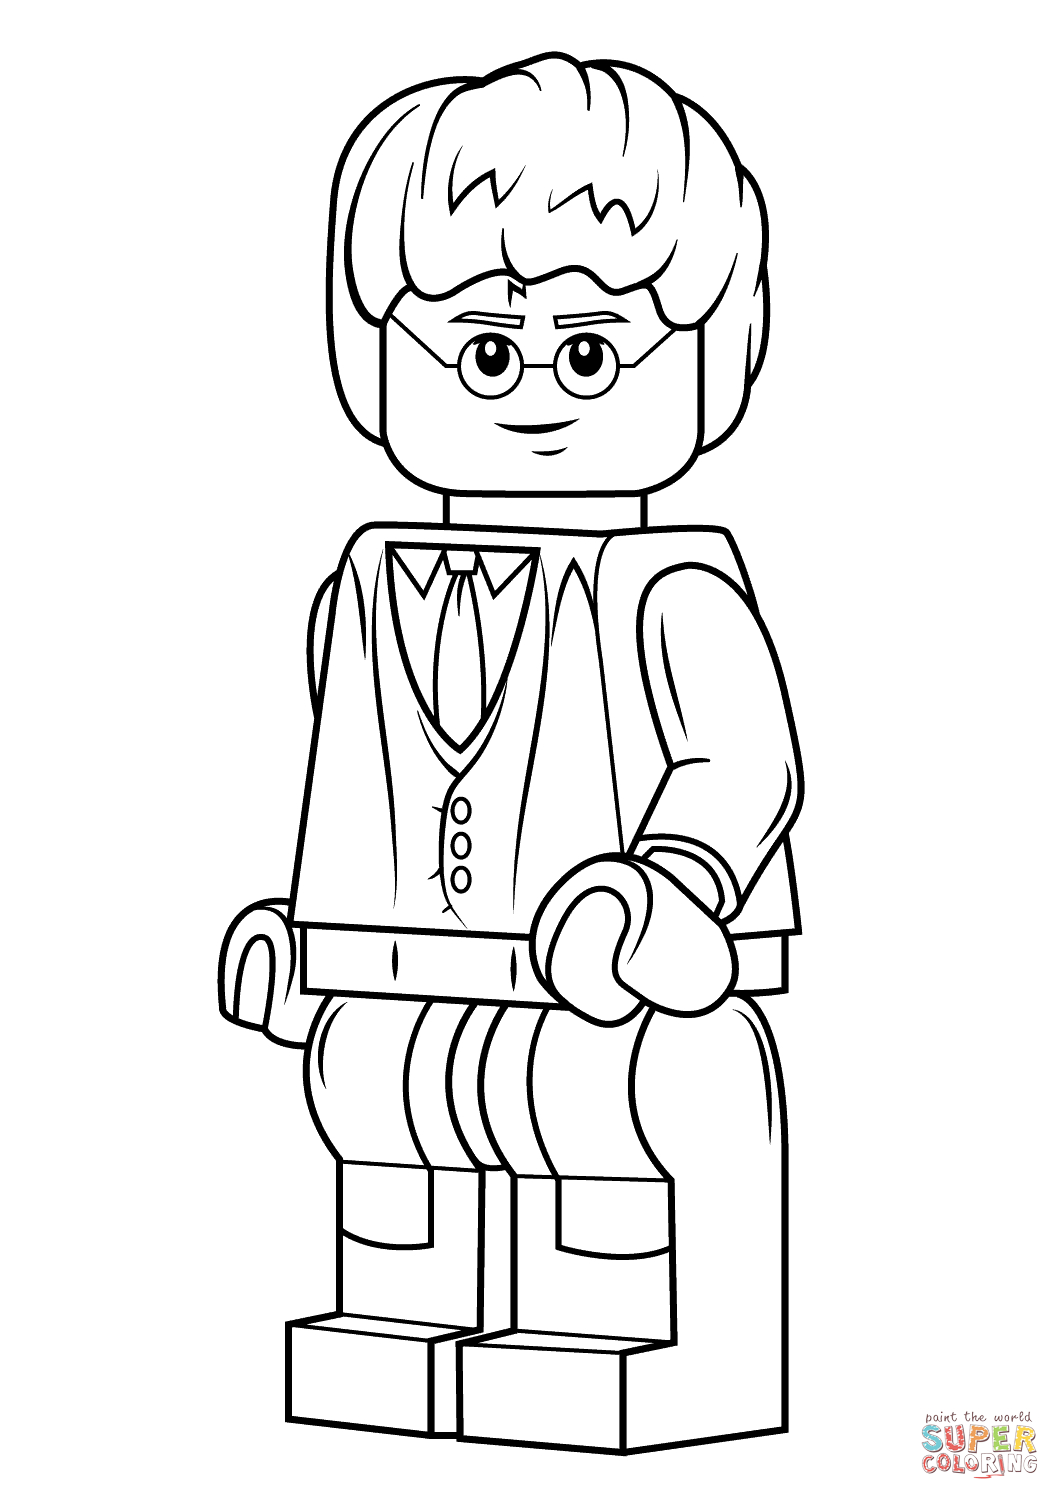 Harry Potter Coloring Pages Lego Harry Potter Coloring Page Free Printable Coloring Pages